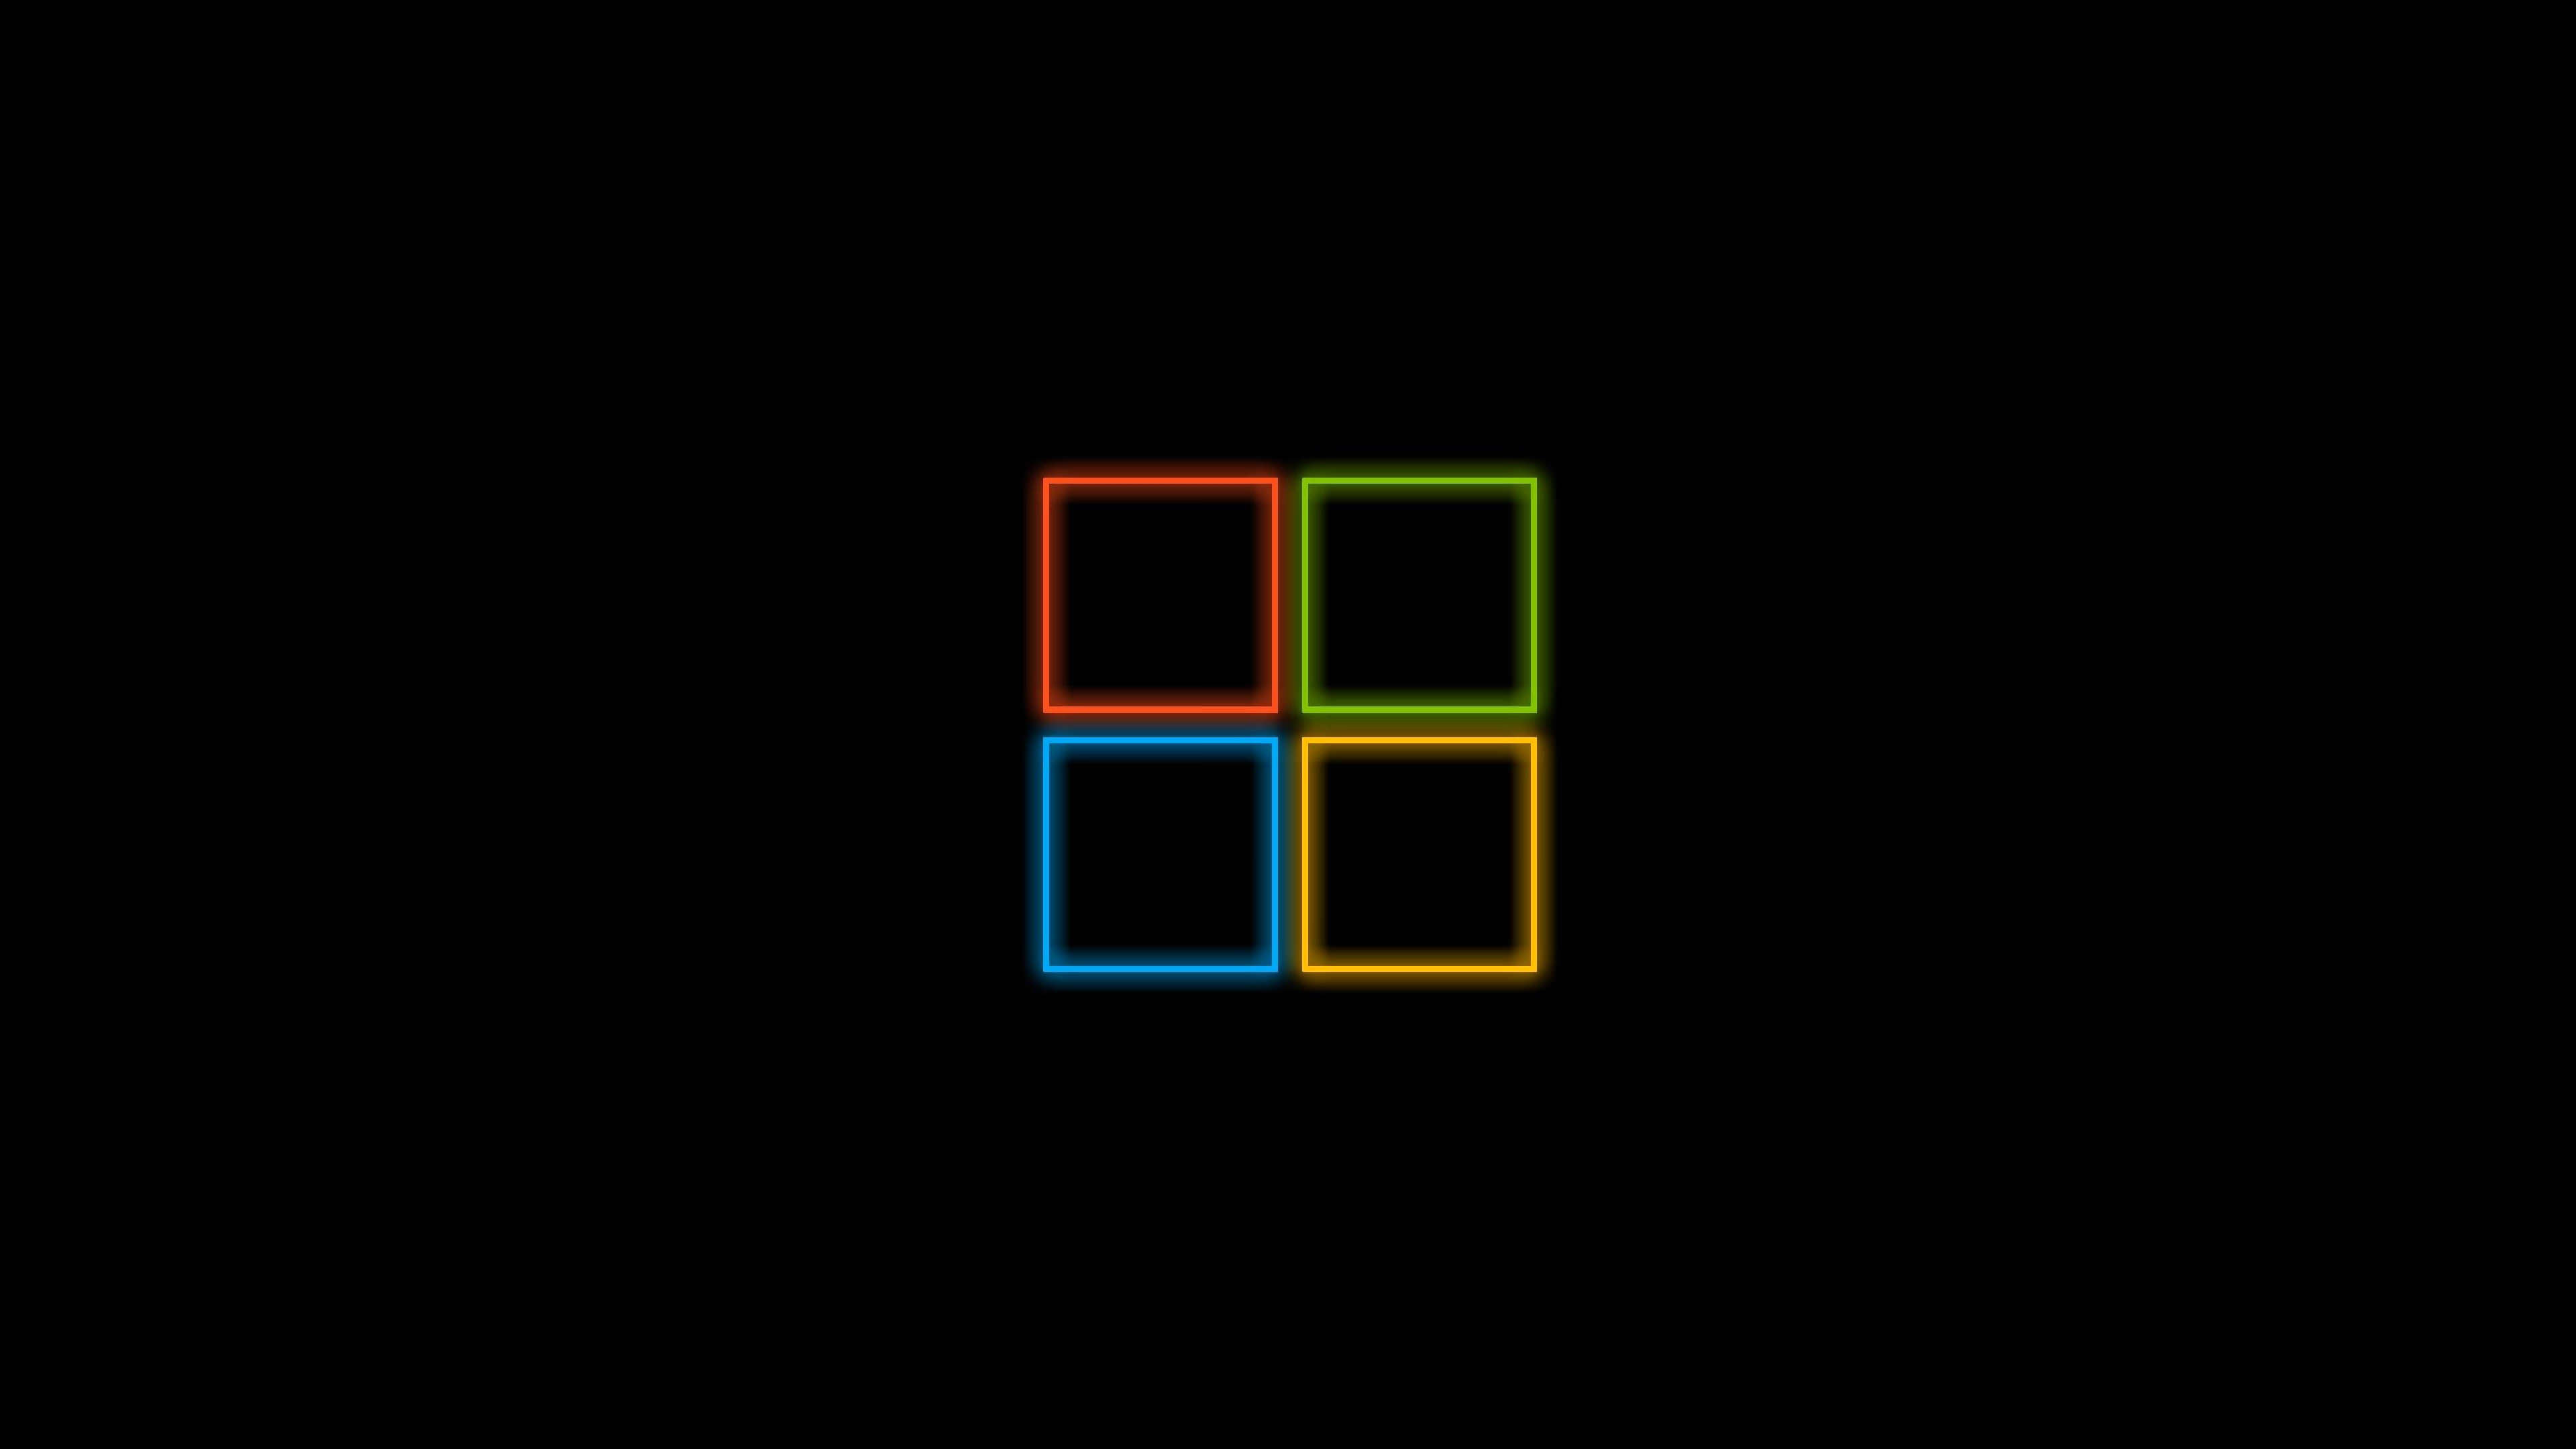 Windows 10 Logo Wallpaper 4k